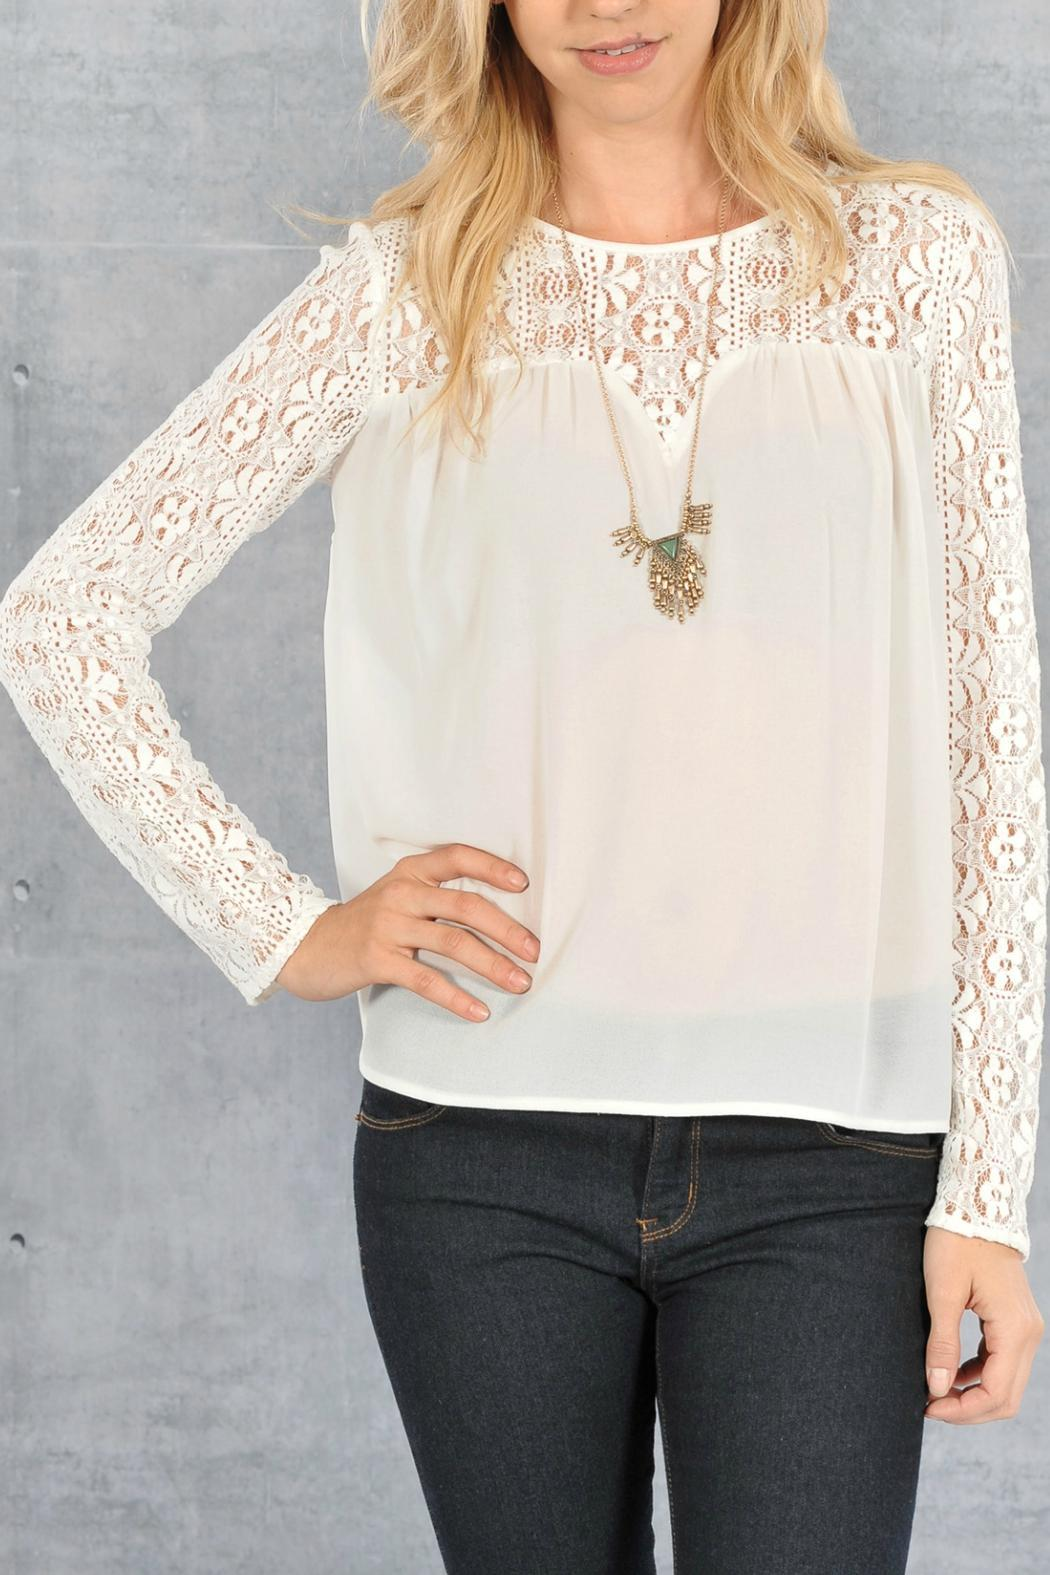 Double Zero Romantic White-Lace Blouse from Branford by ...